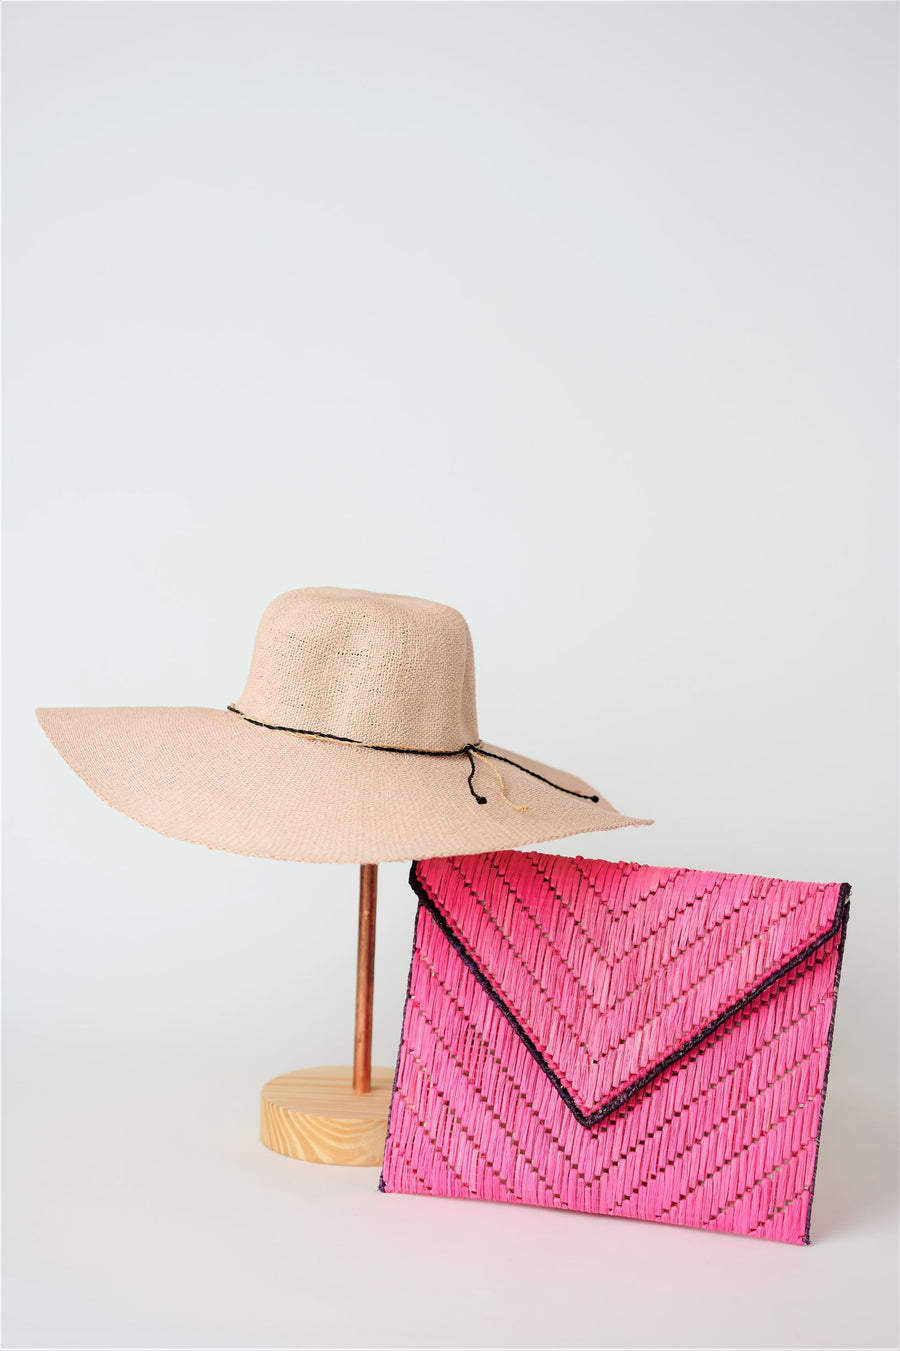 Collection of pink straw from Anya & Niki - the Big Hat and the Pixley Clutch